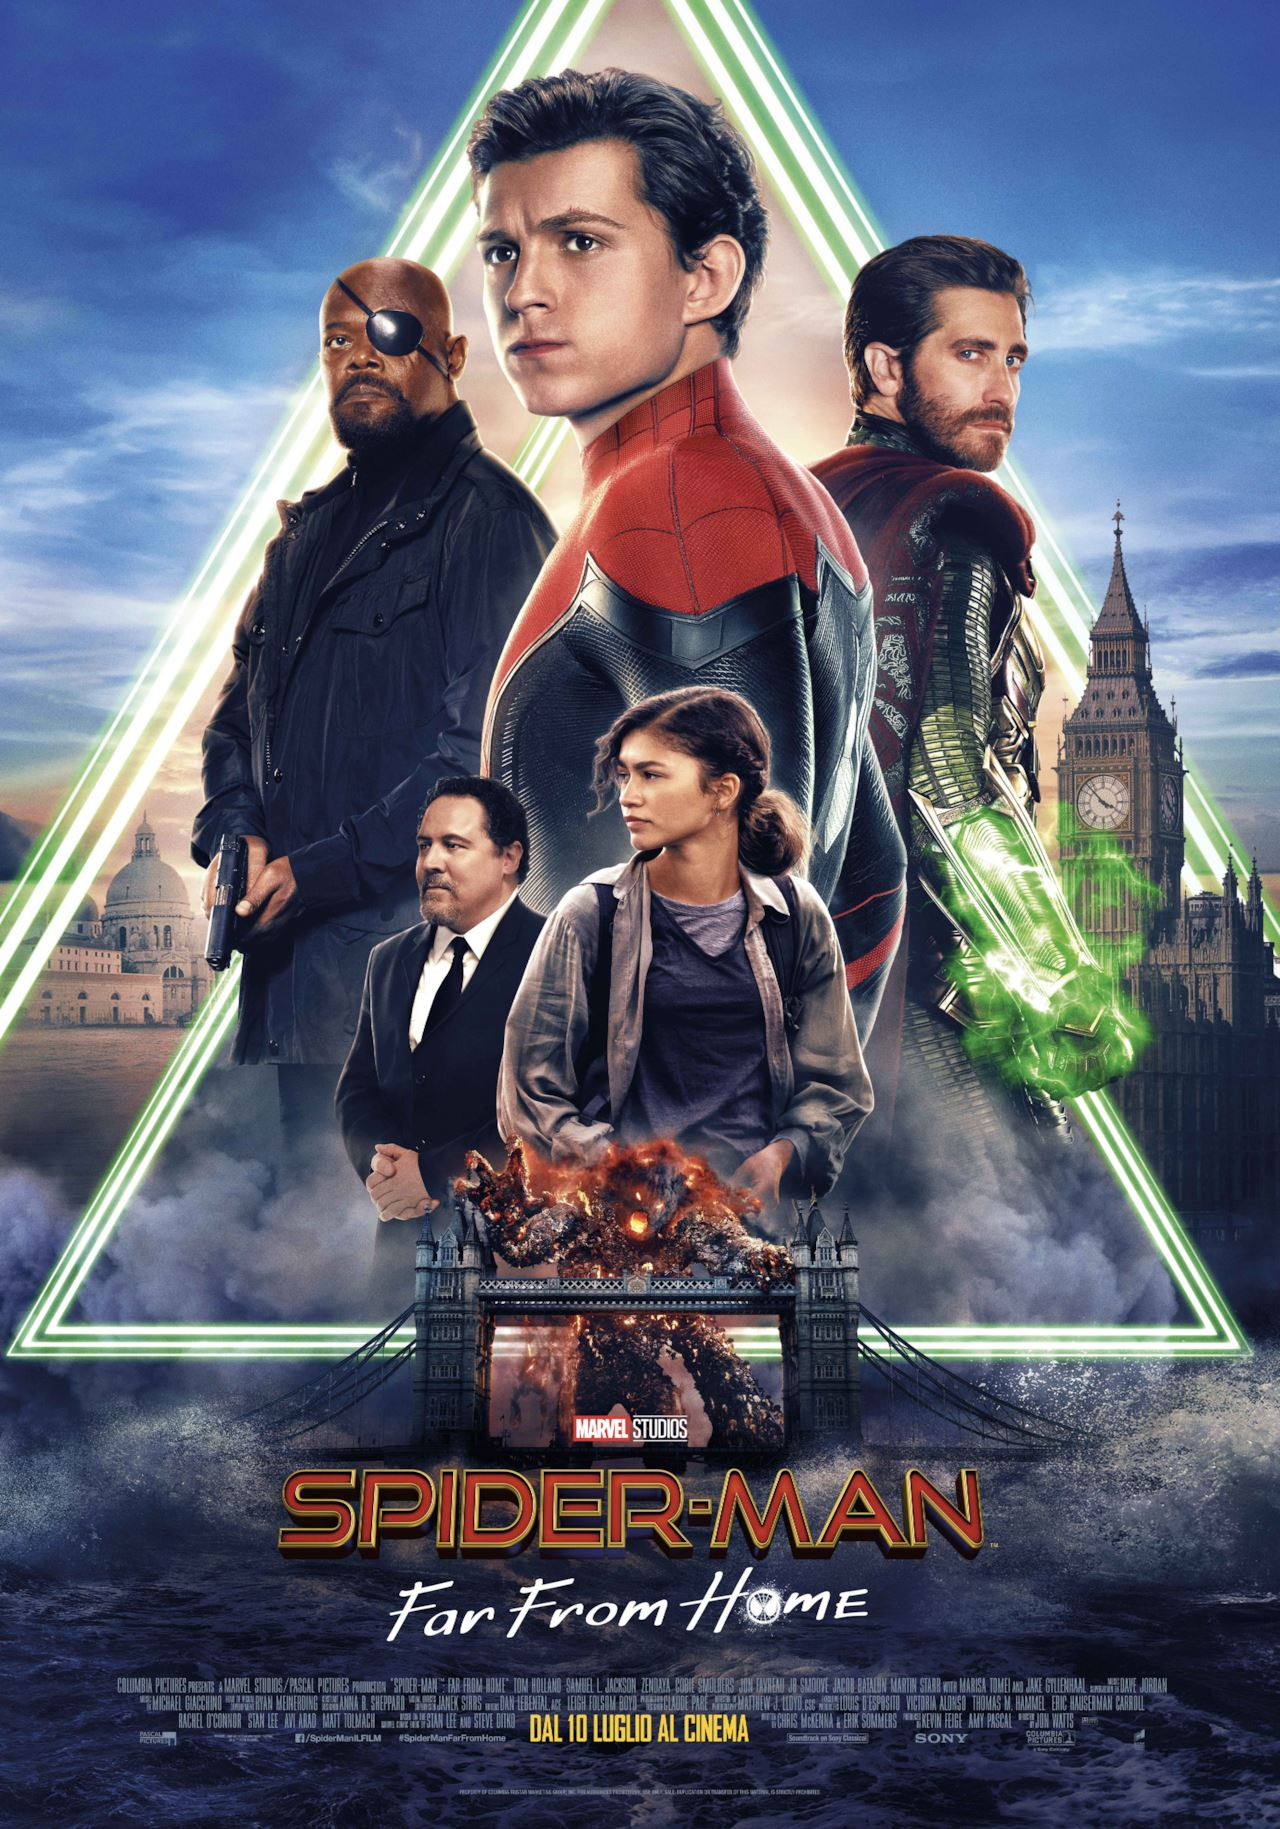 SPIDER-MANFAR FROM HOME